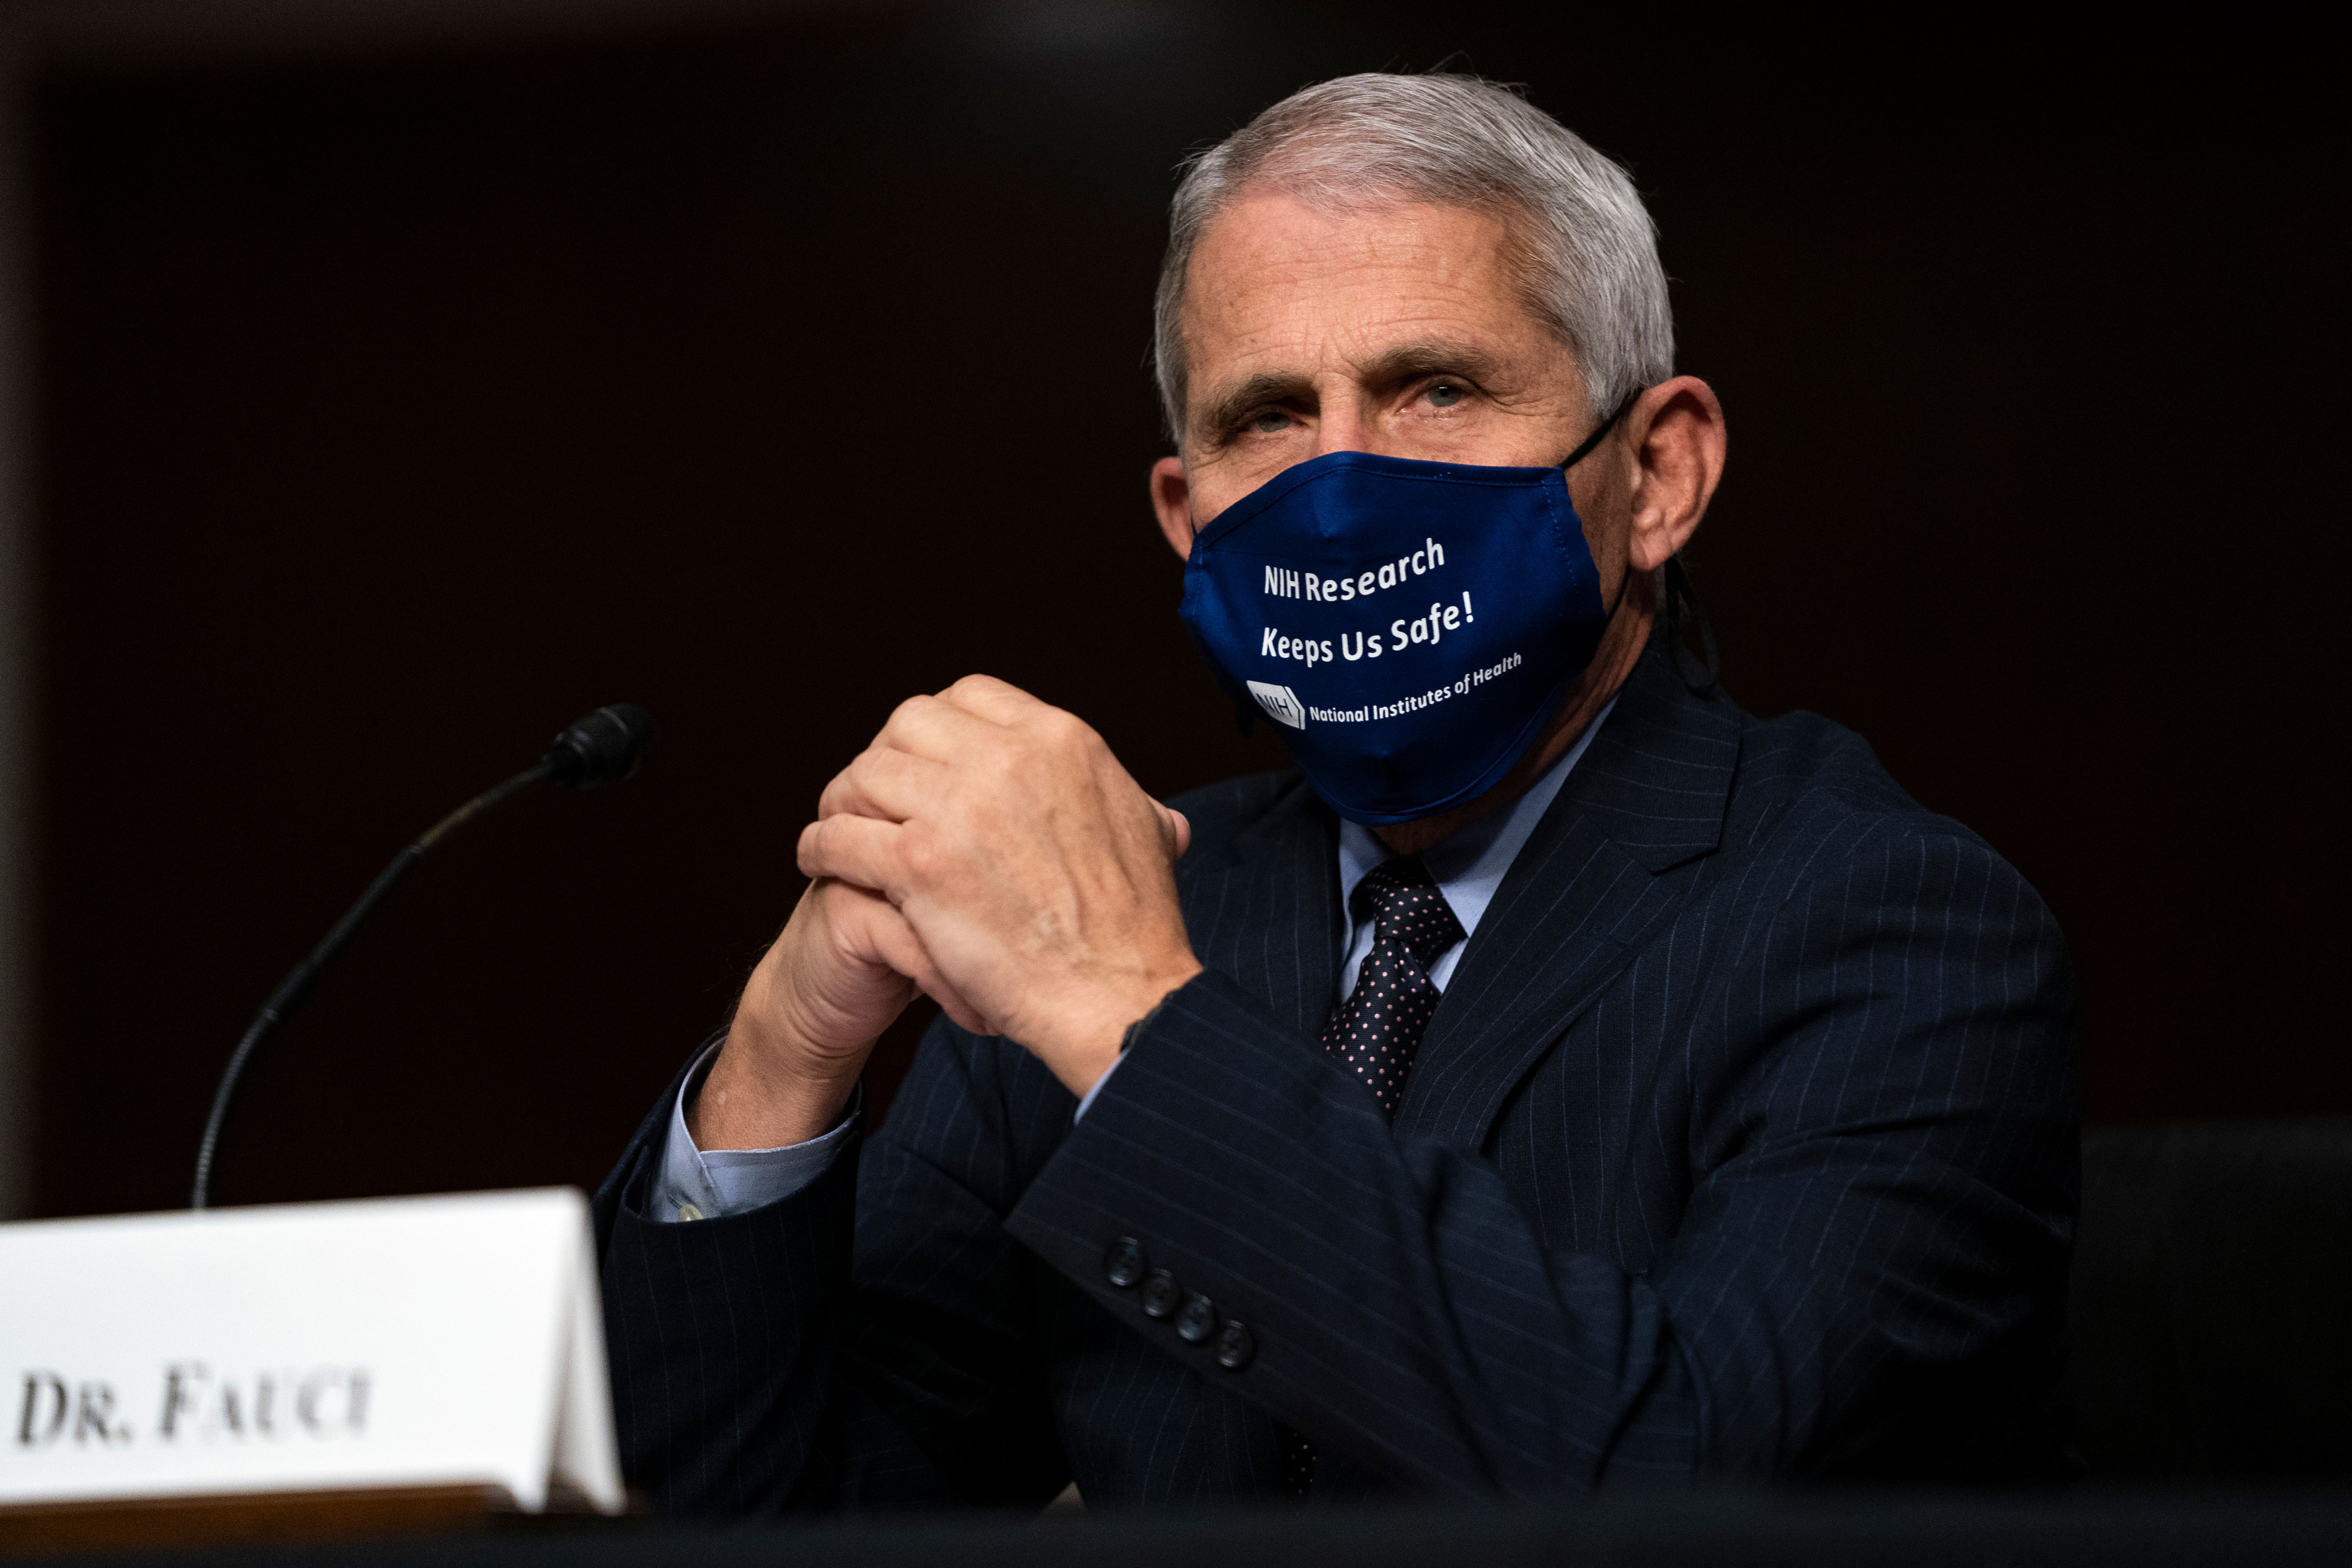 Dr. Anthony Fauci, director of the National Institute of Allergy and Infectious Diseases, testifies at a hearing in Washington on September 23.